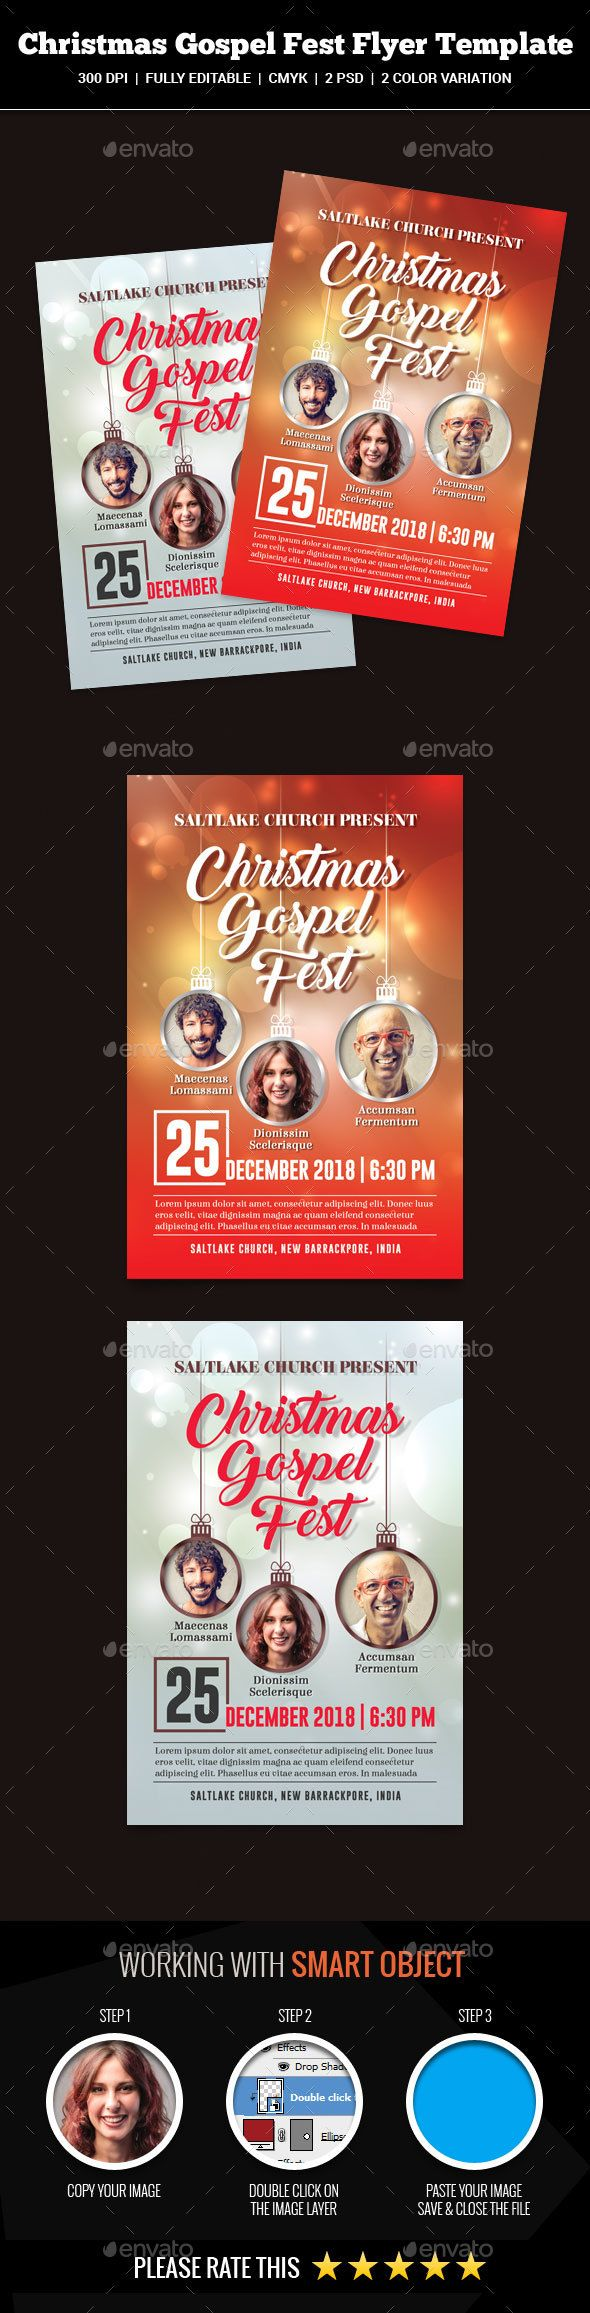 Christmas Gospel Fest Flyer Template Psd  Christmas Flyer